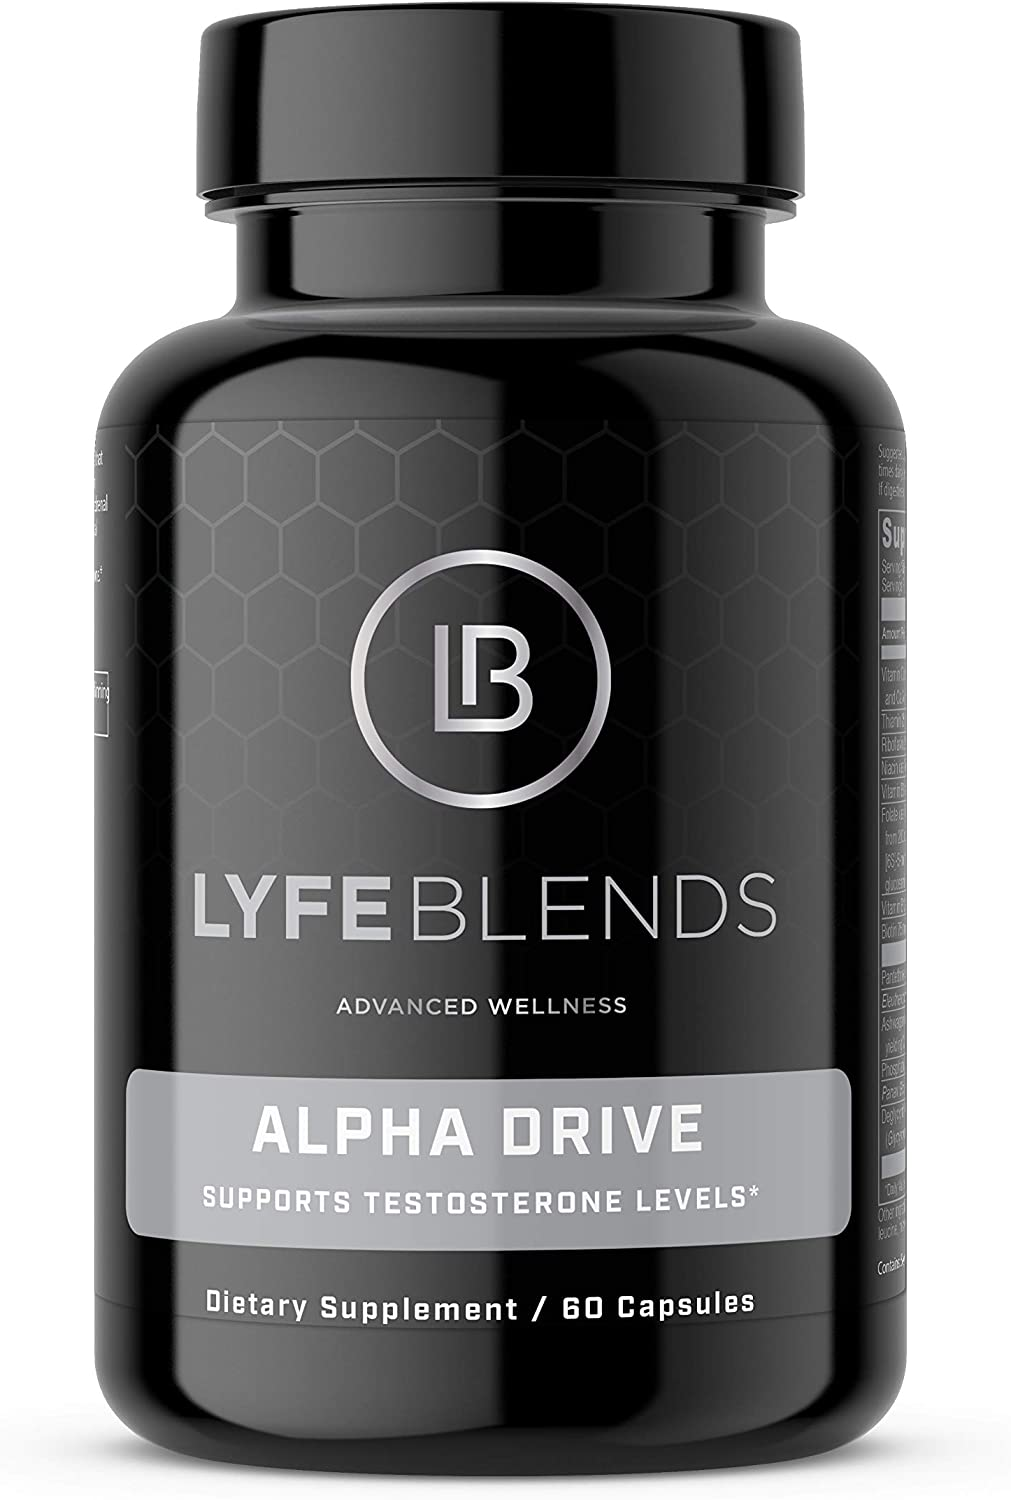 LYFE BLENDS Memphis Mall Alpha Drive All items free shipping Testosterone and Bal Hormone Metabolism